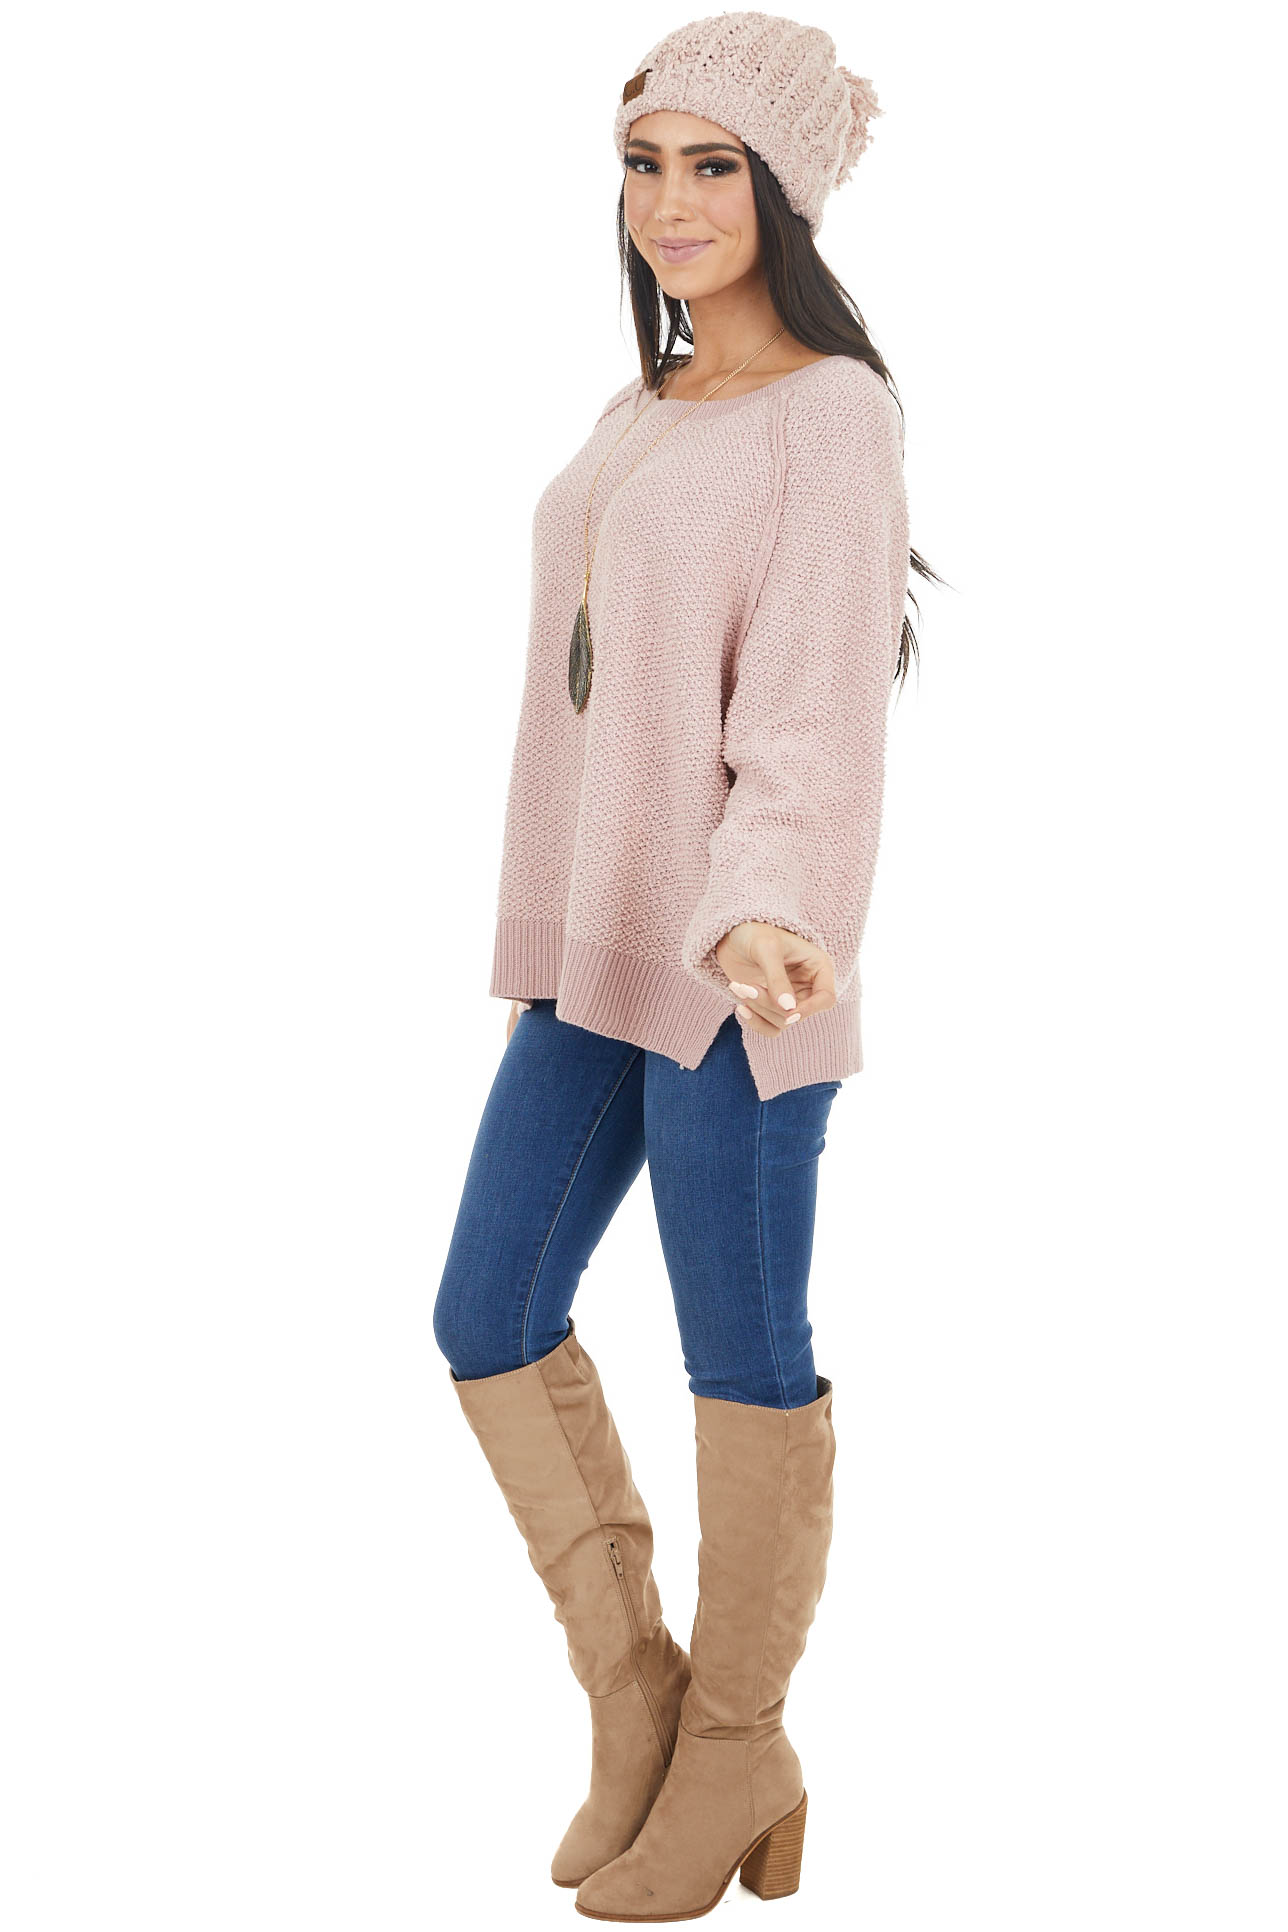 Dusty Blush Long Sleeve Lightweight Sweater with Raw Details